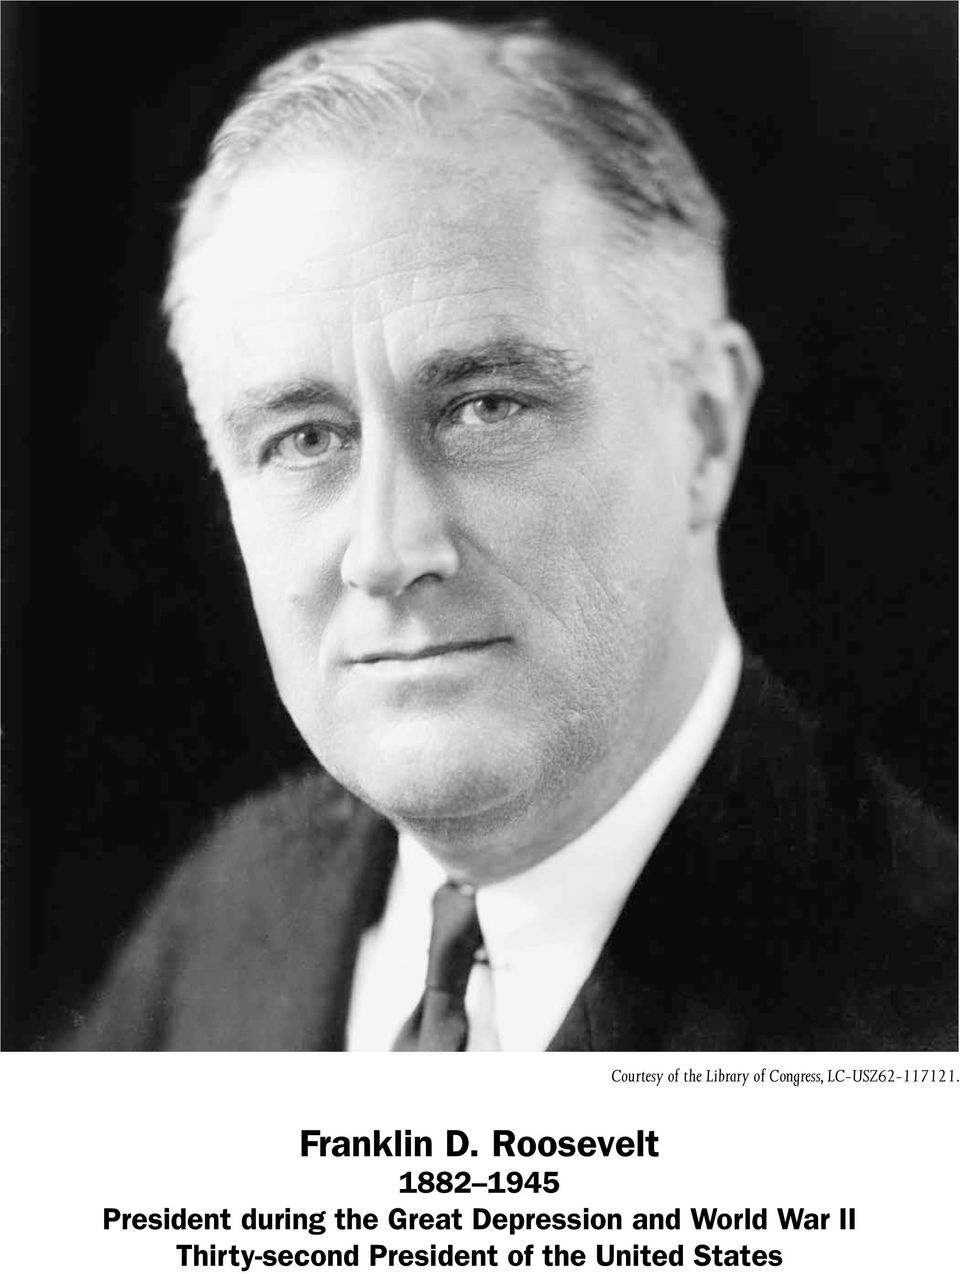 Roosevelt 1882 1945 President during the Great